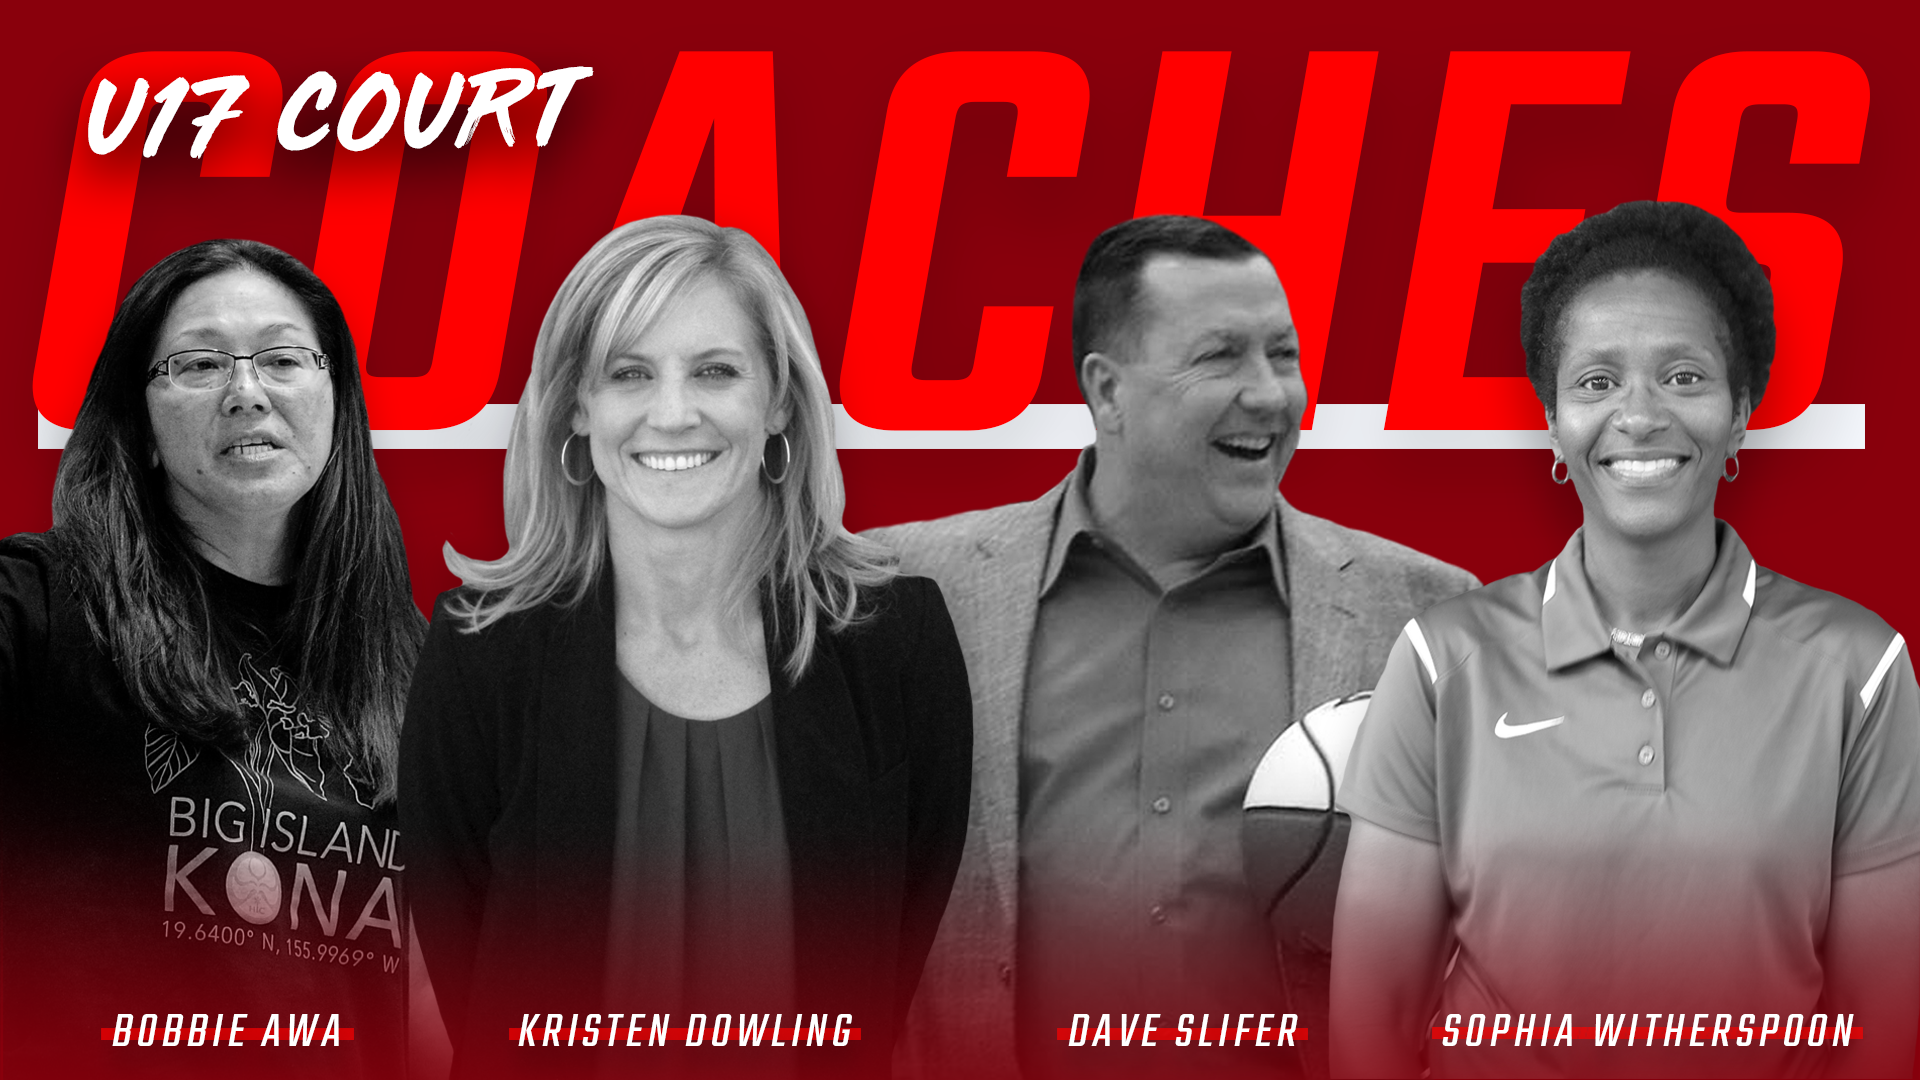 2018 USA Women's U17 Court Coaches